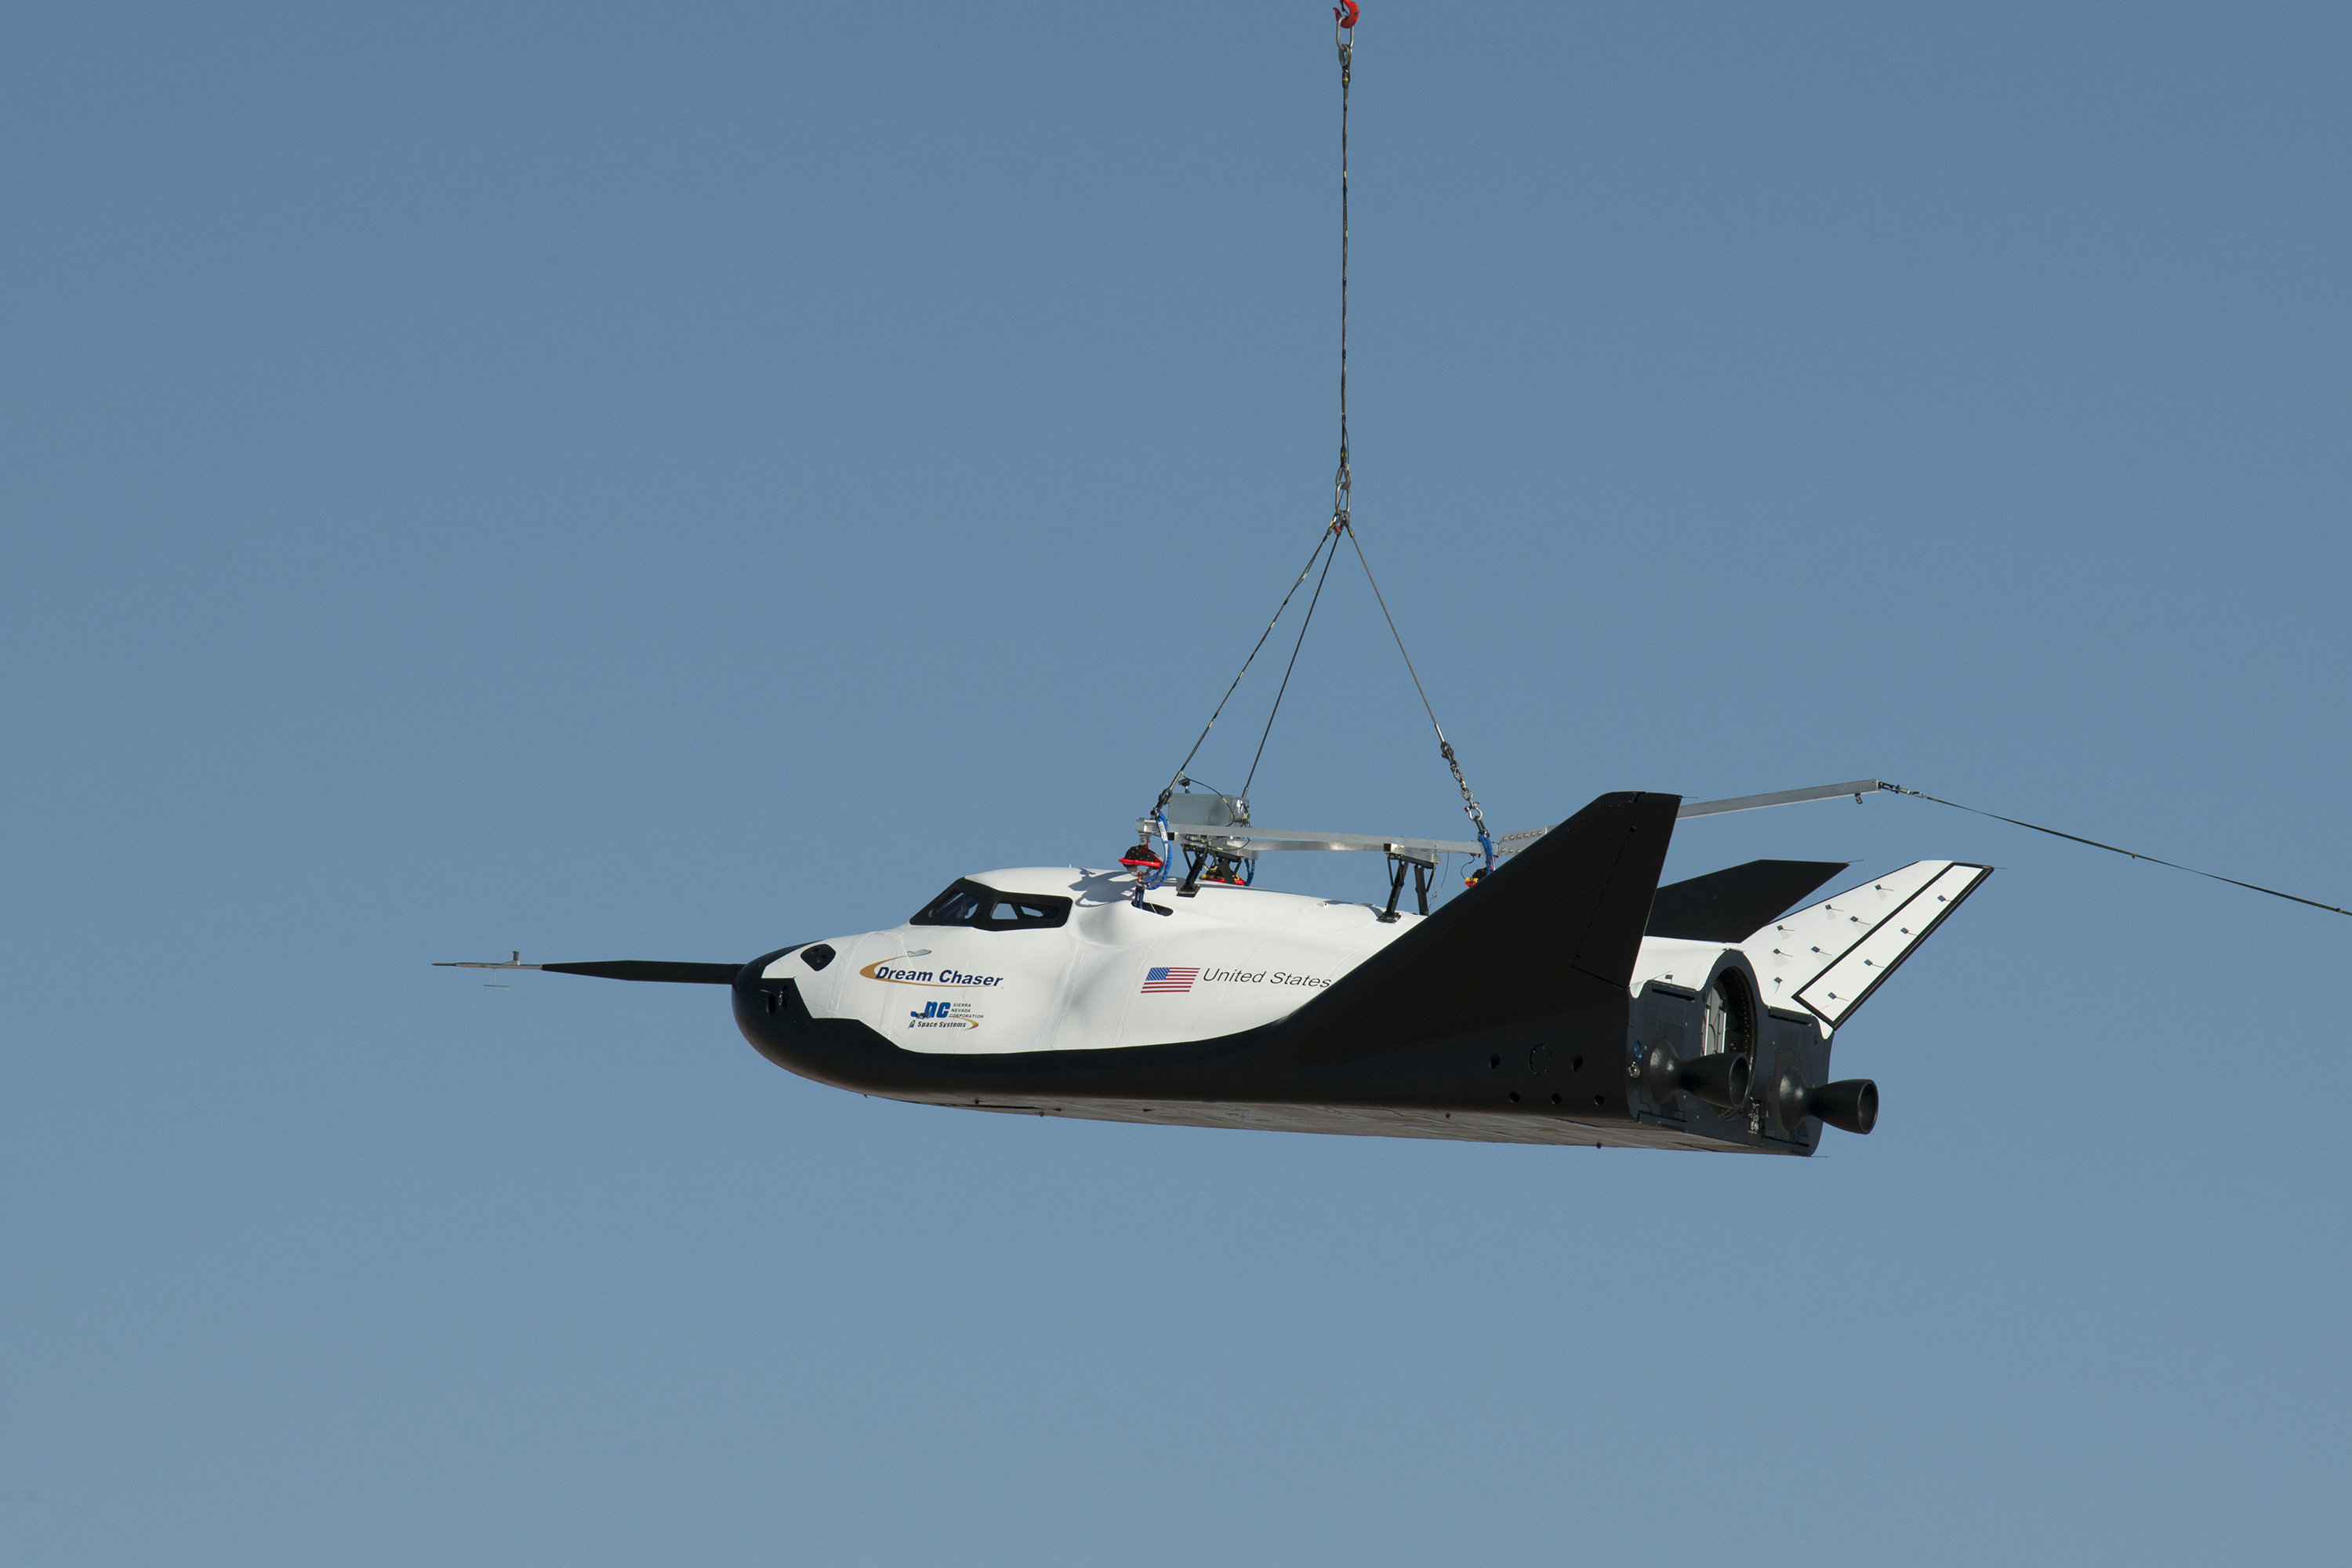 NASA partner Sierra Nevada Corporation (SNC) of Louisville, Colo., performs a captive-carry test of the Dream Chaser spacecraft Thursday at NASA's Dryden Flight Research Center in Edwards, Calif. Image Credit: NASA